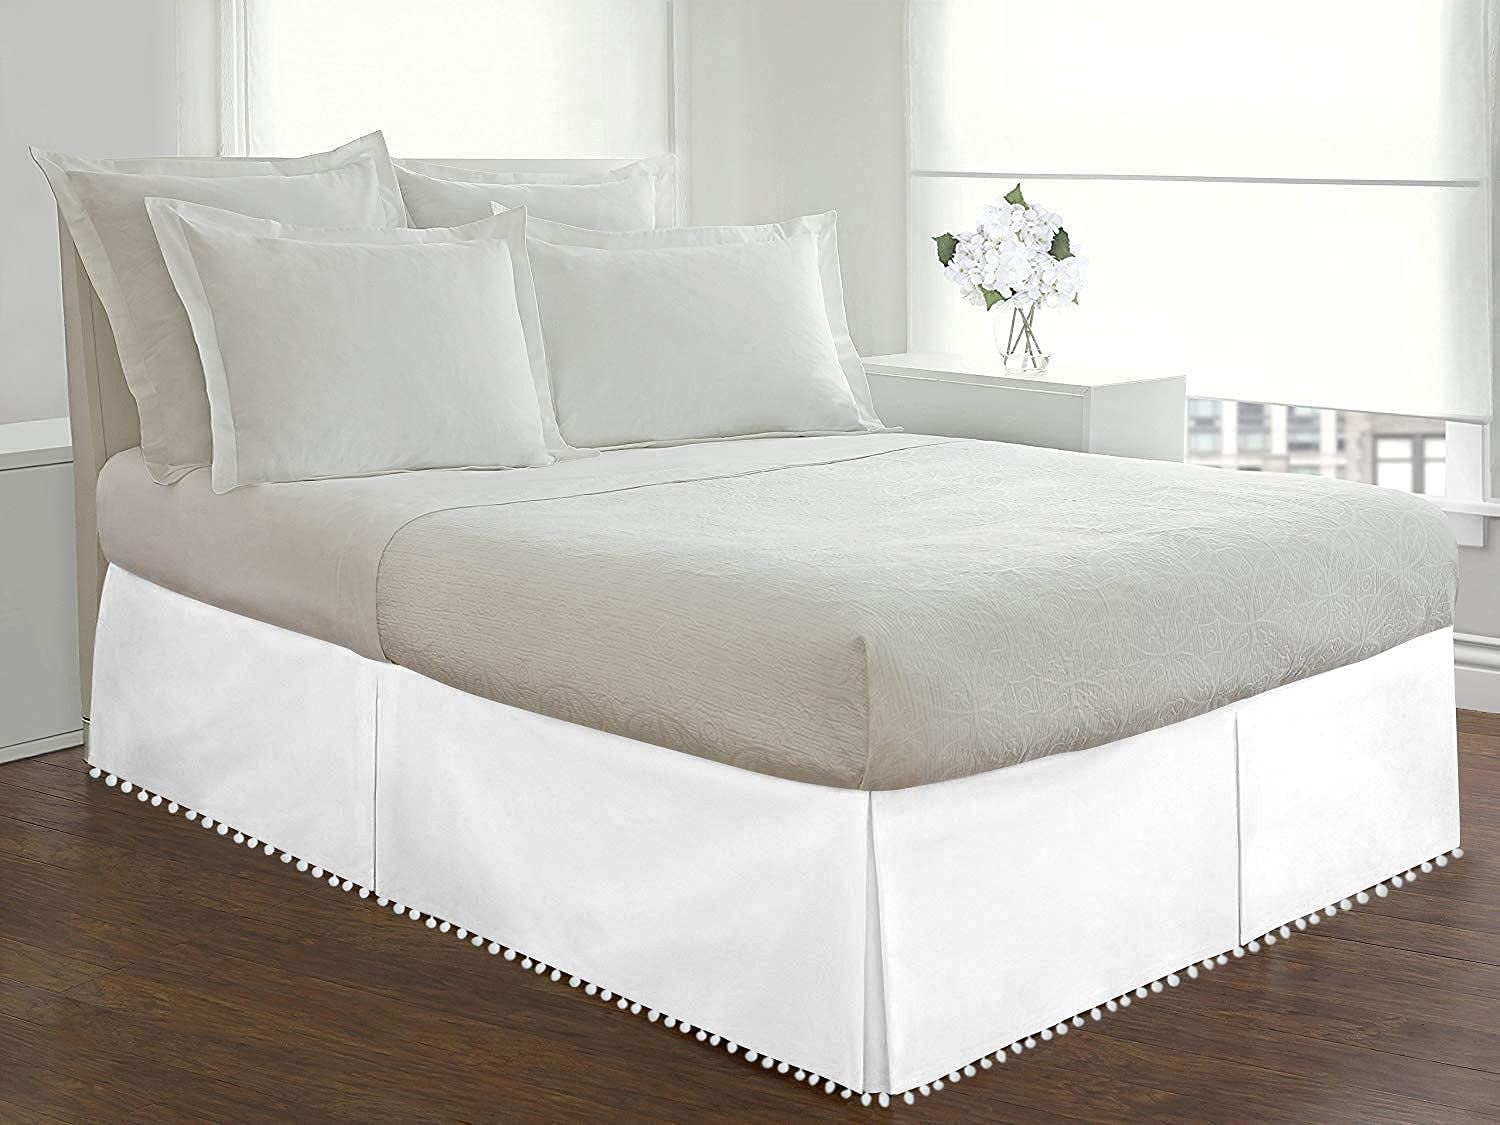 NG Quantity limited Linen Pom NEW before selling ☆ Tailored BedSkirt 800 Thre 100% Egyptian Cotton